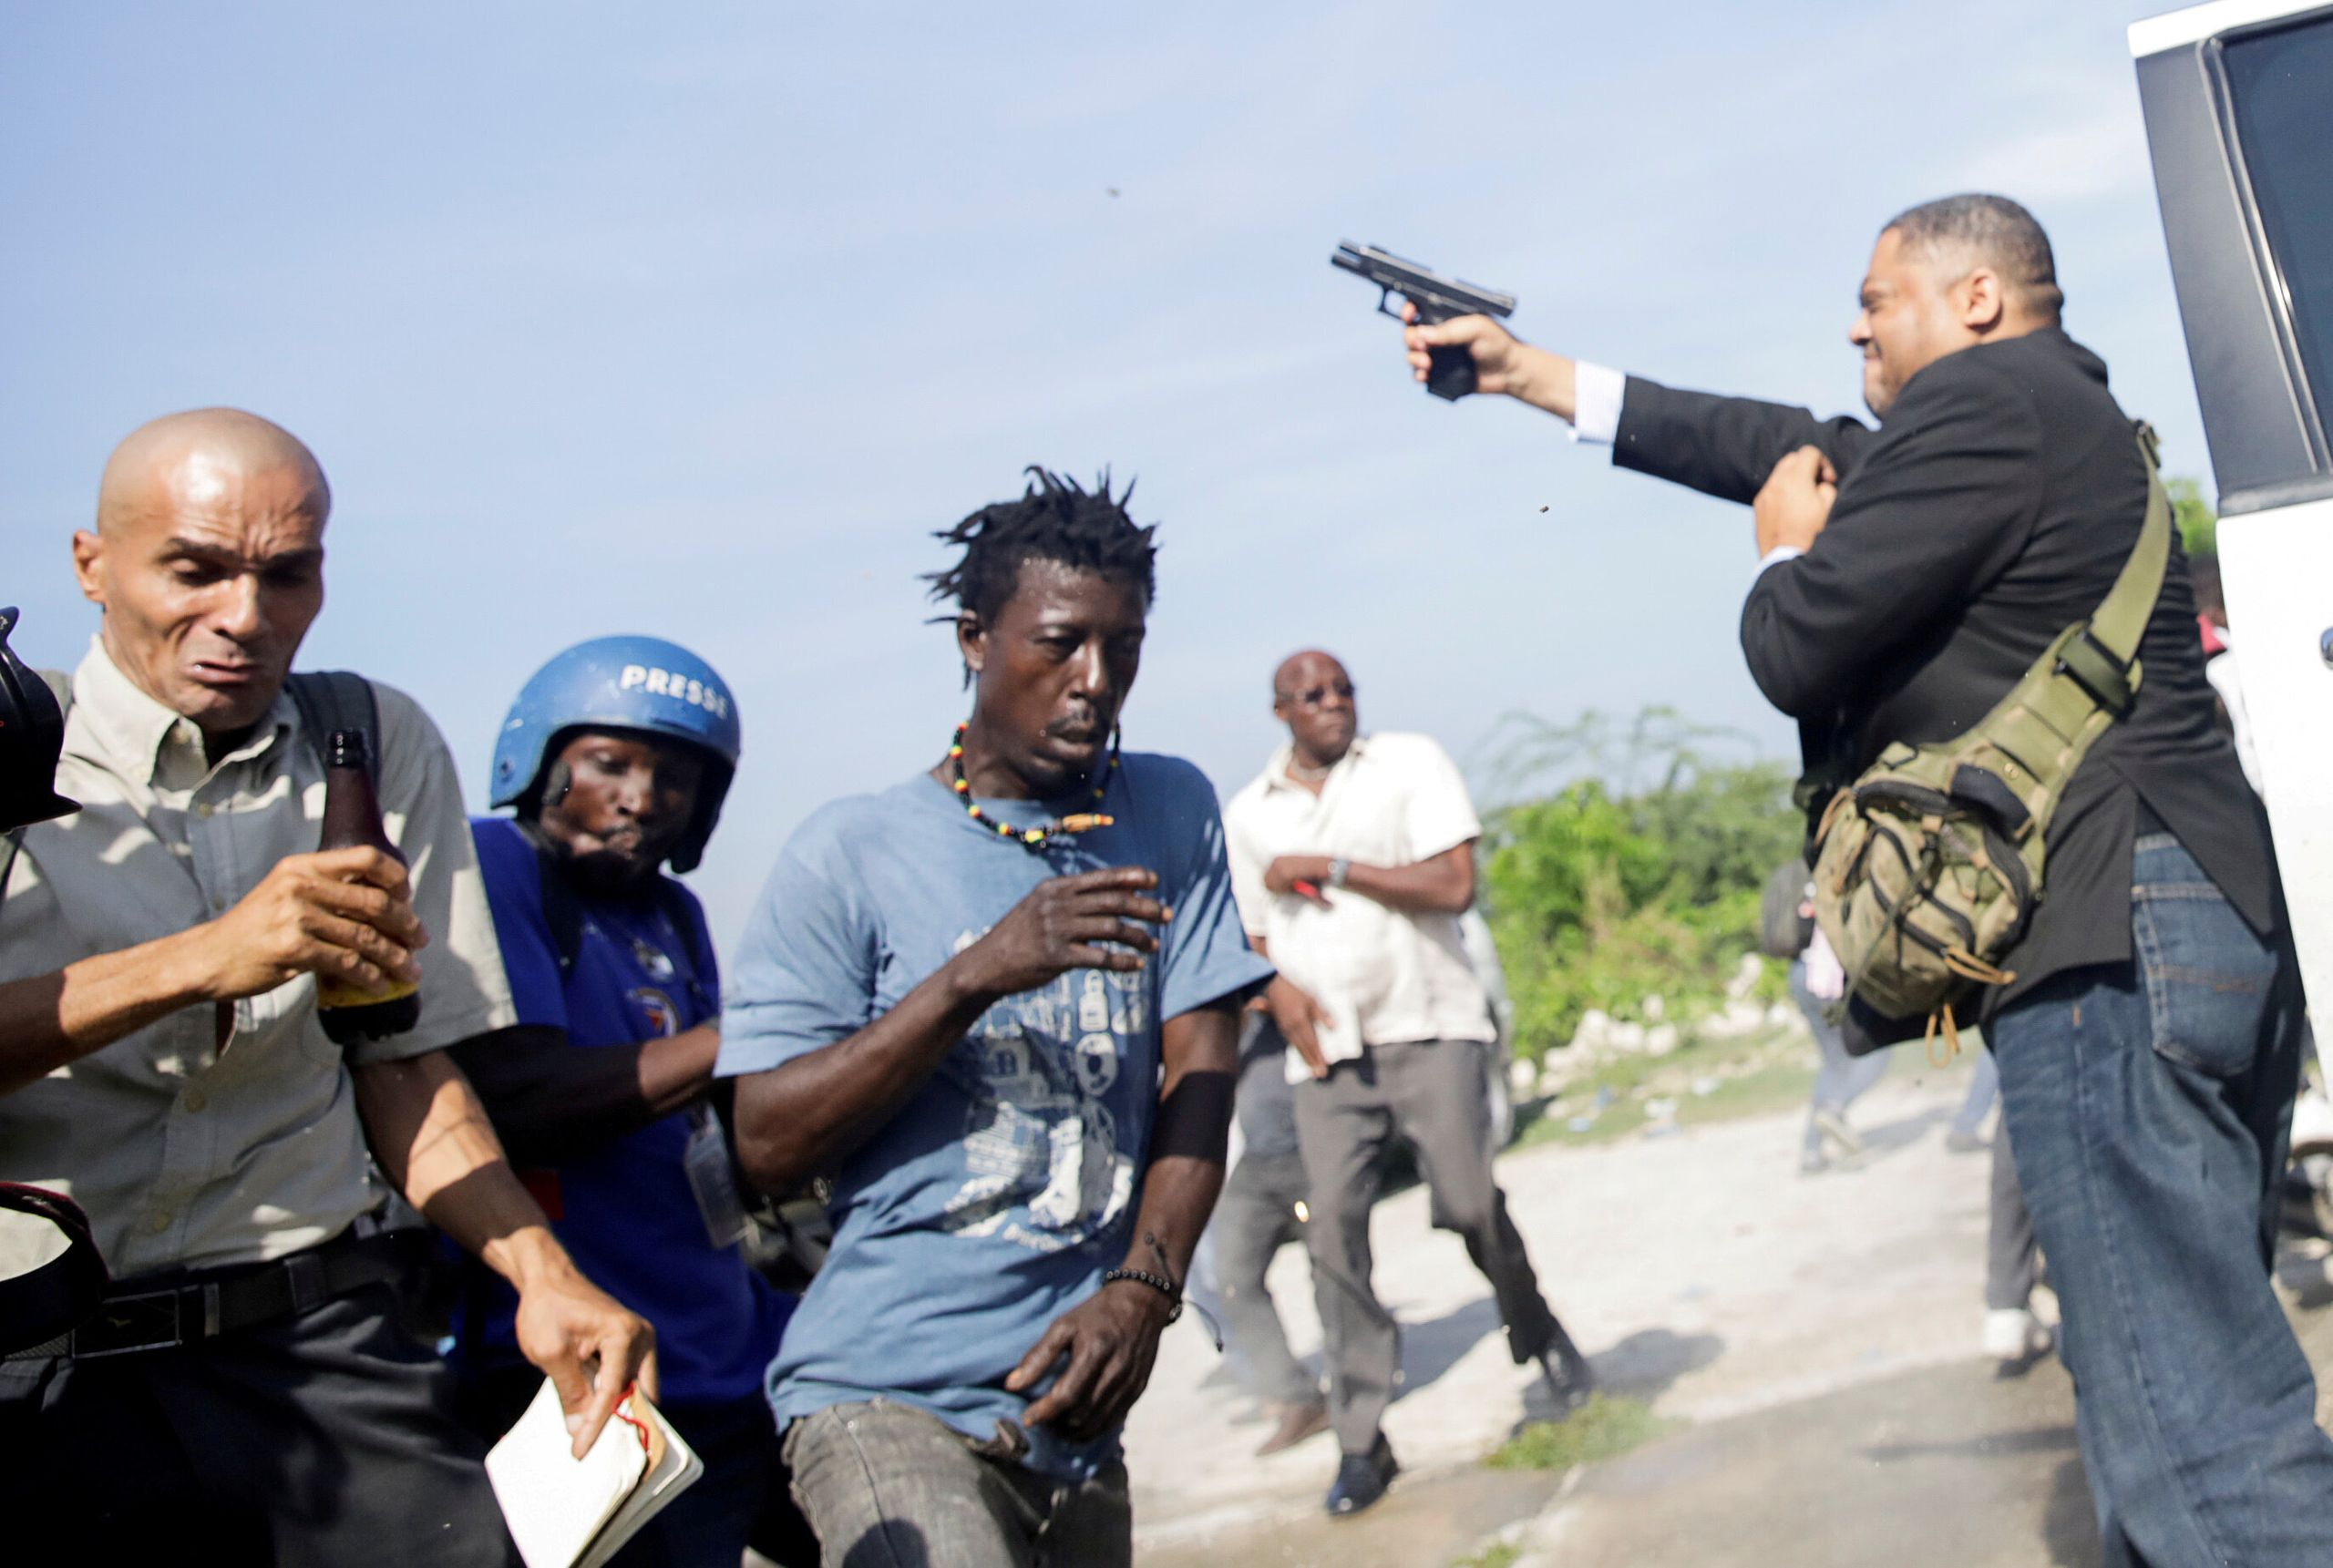 People run as Haiti's Senator Jean Marie Ralph Fethiere (PHTK) fires a gun in the air, injuring Chery Dieu-Nalio, a photograp